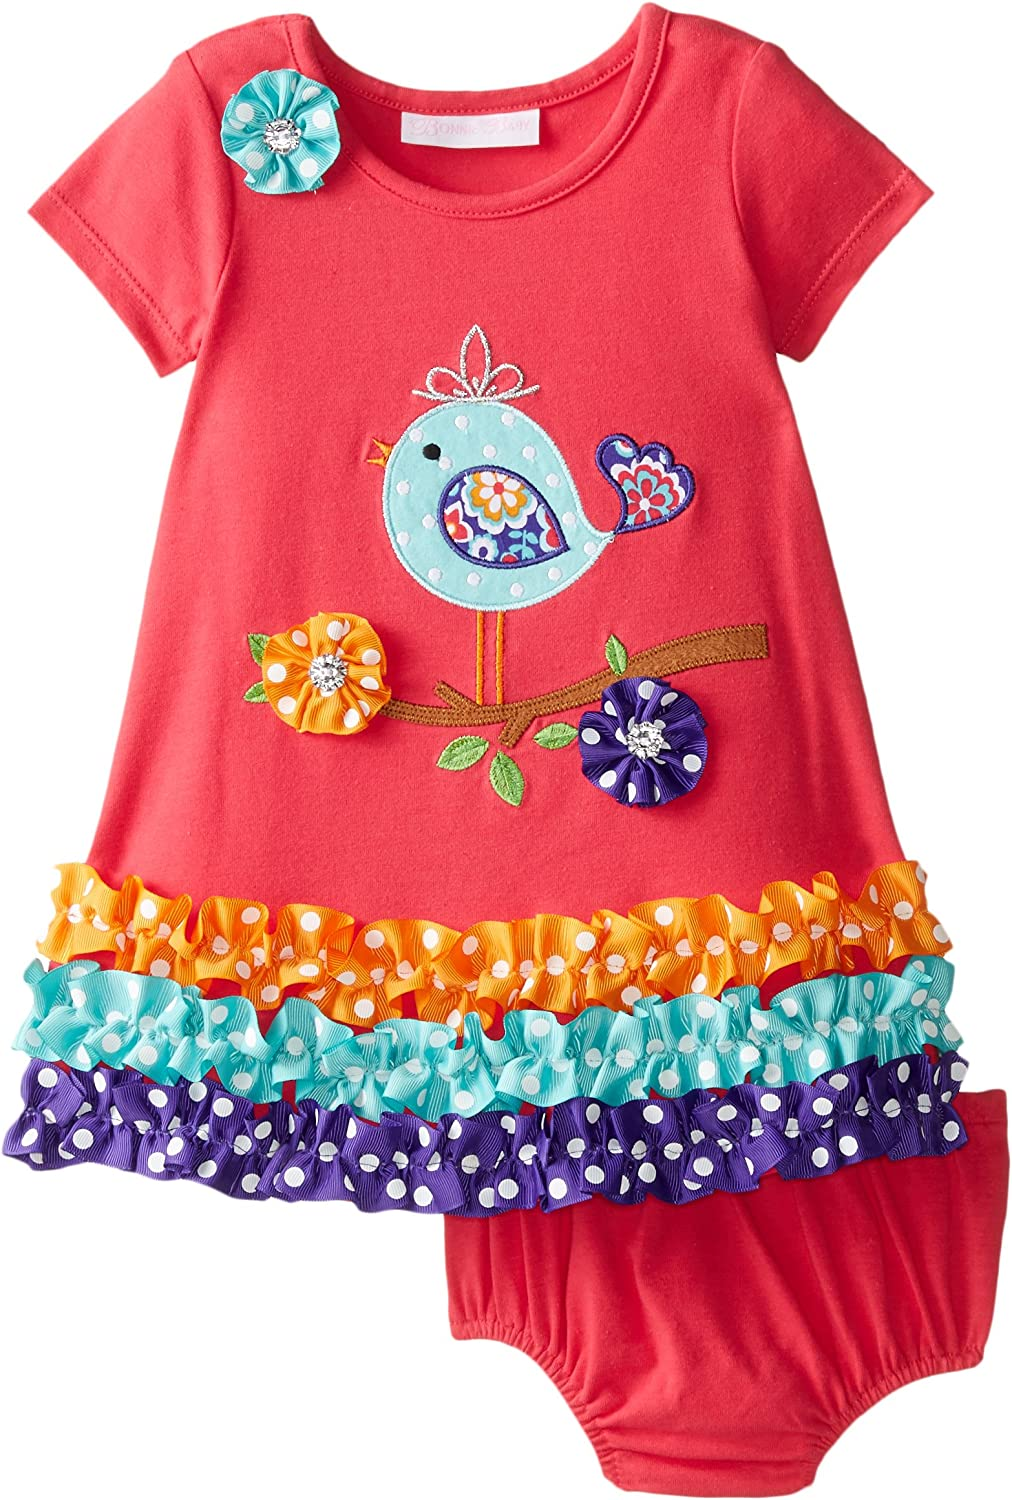 Bonnie Baby Baby Girls Bird Applique Dress